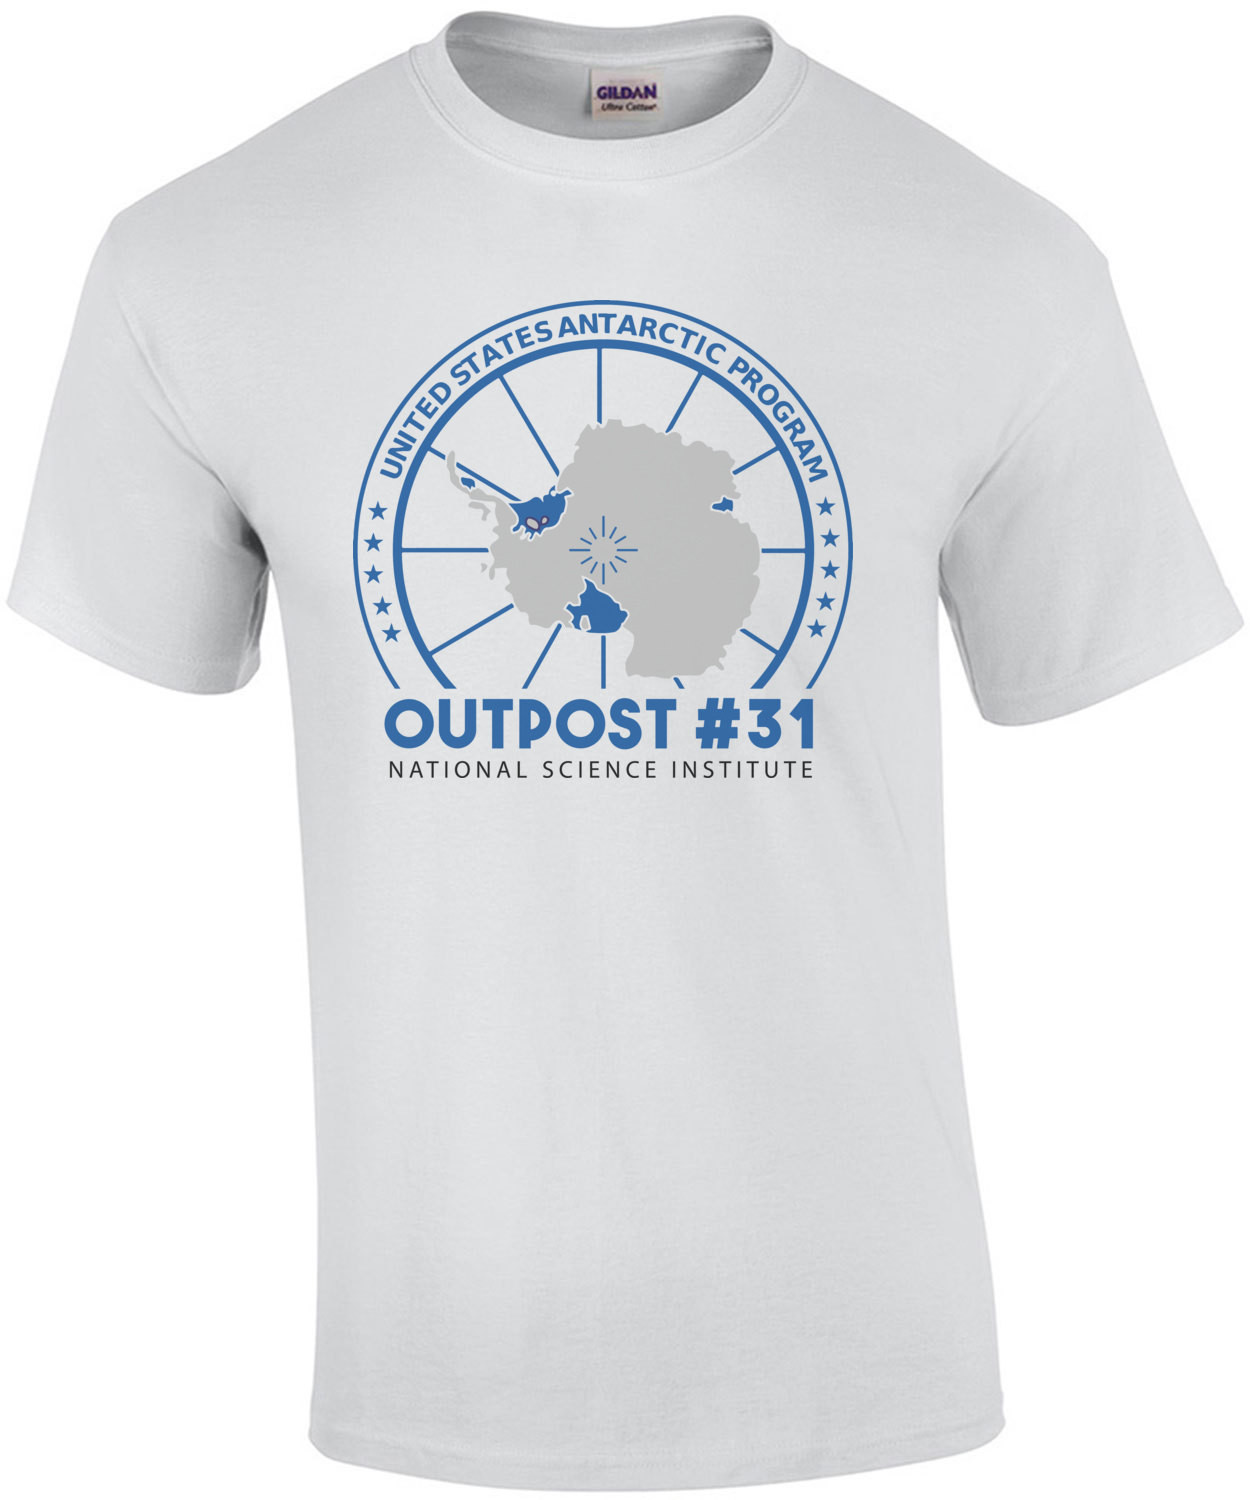 U.S. Antarctica Research Program - Outpost 31 - The Thing